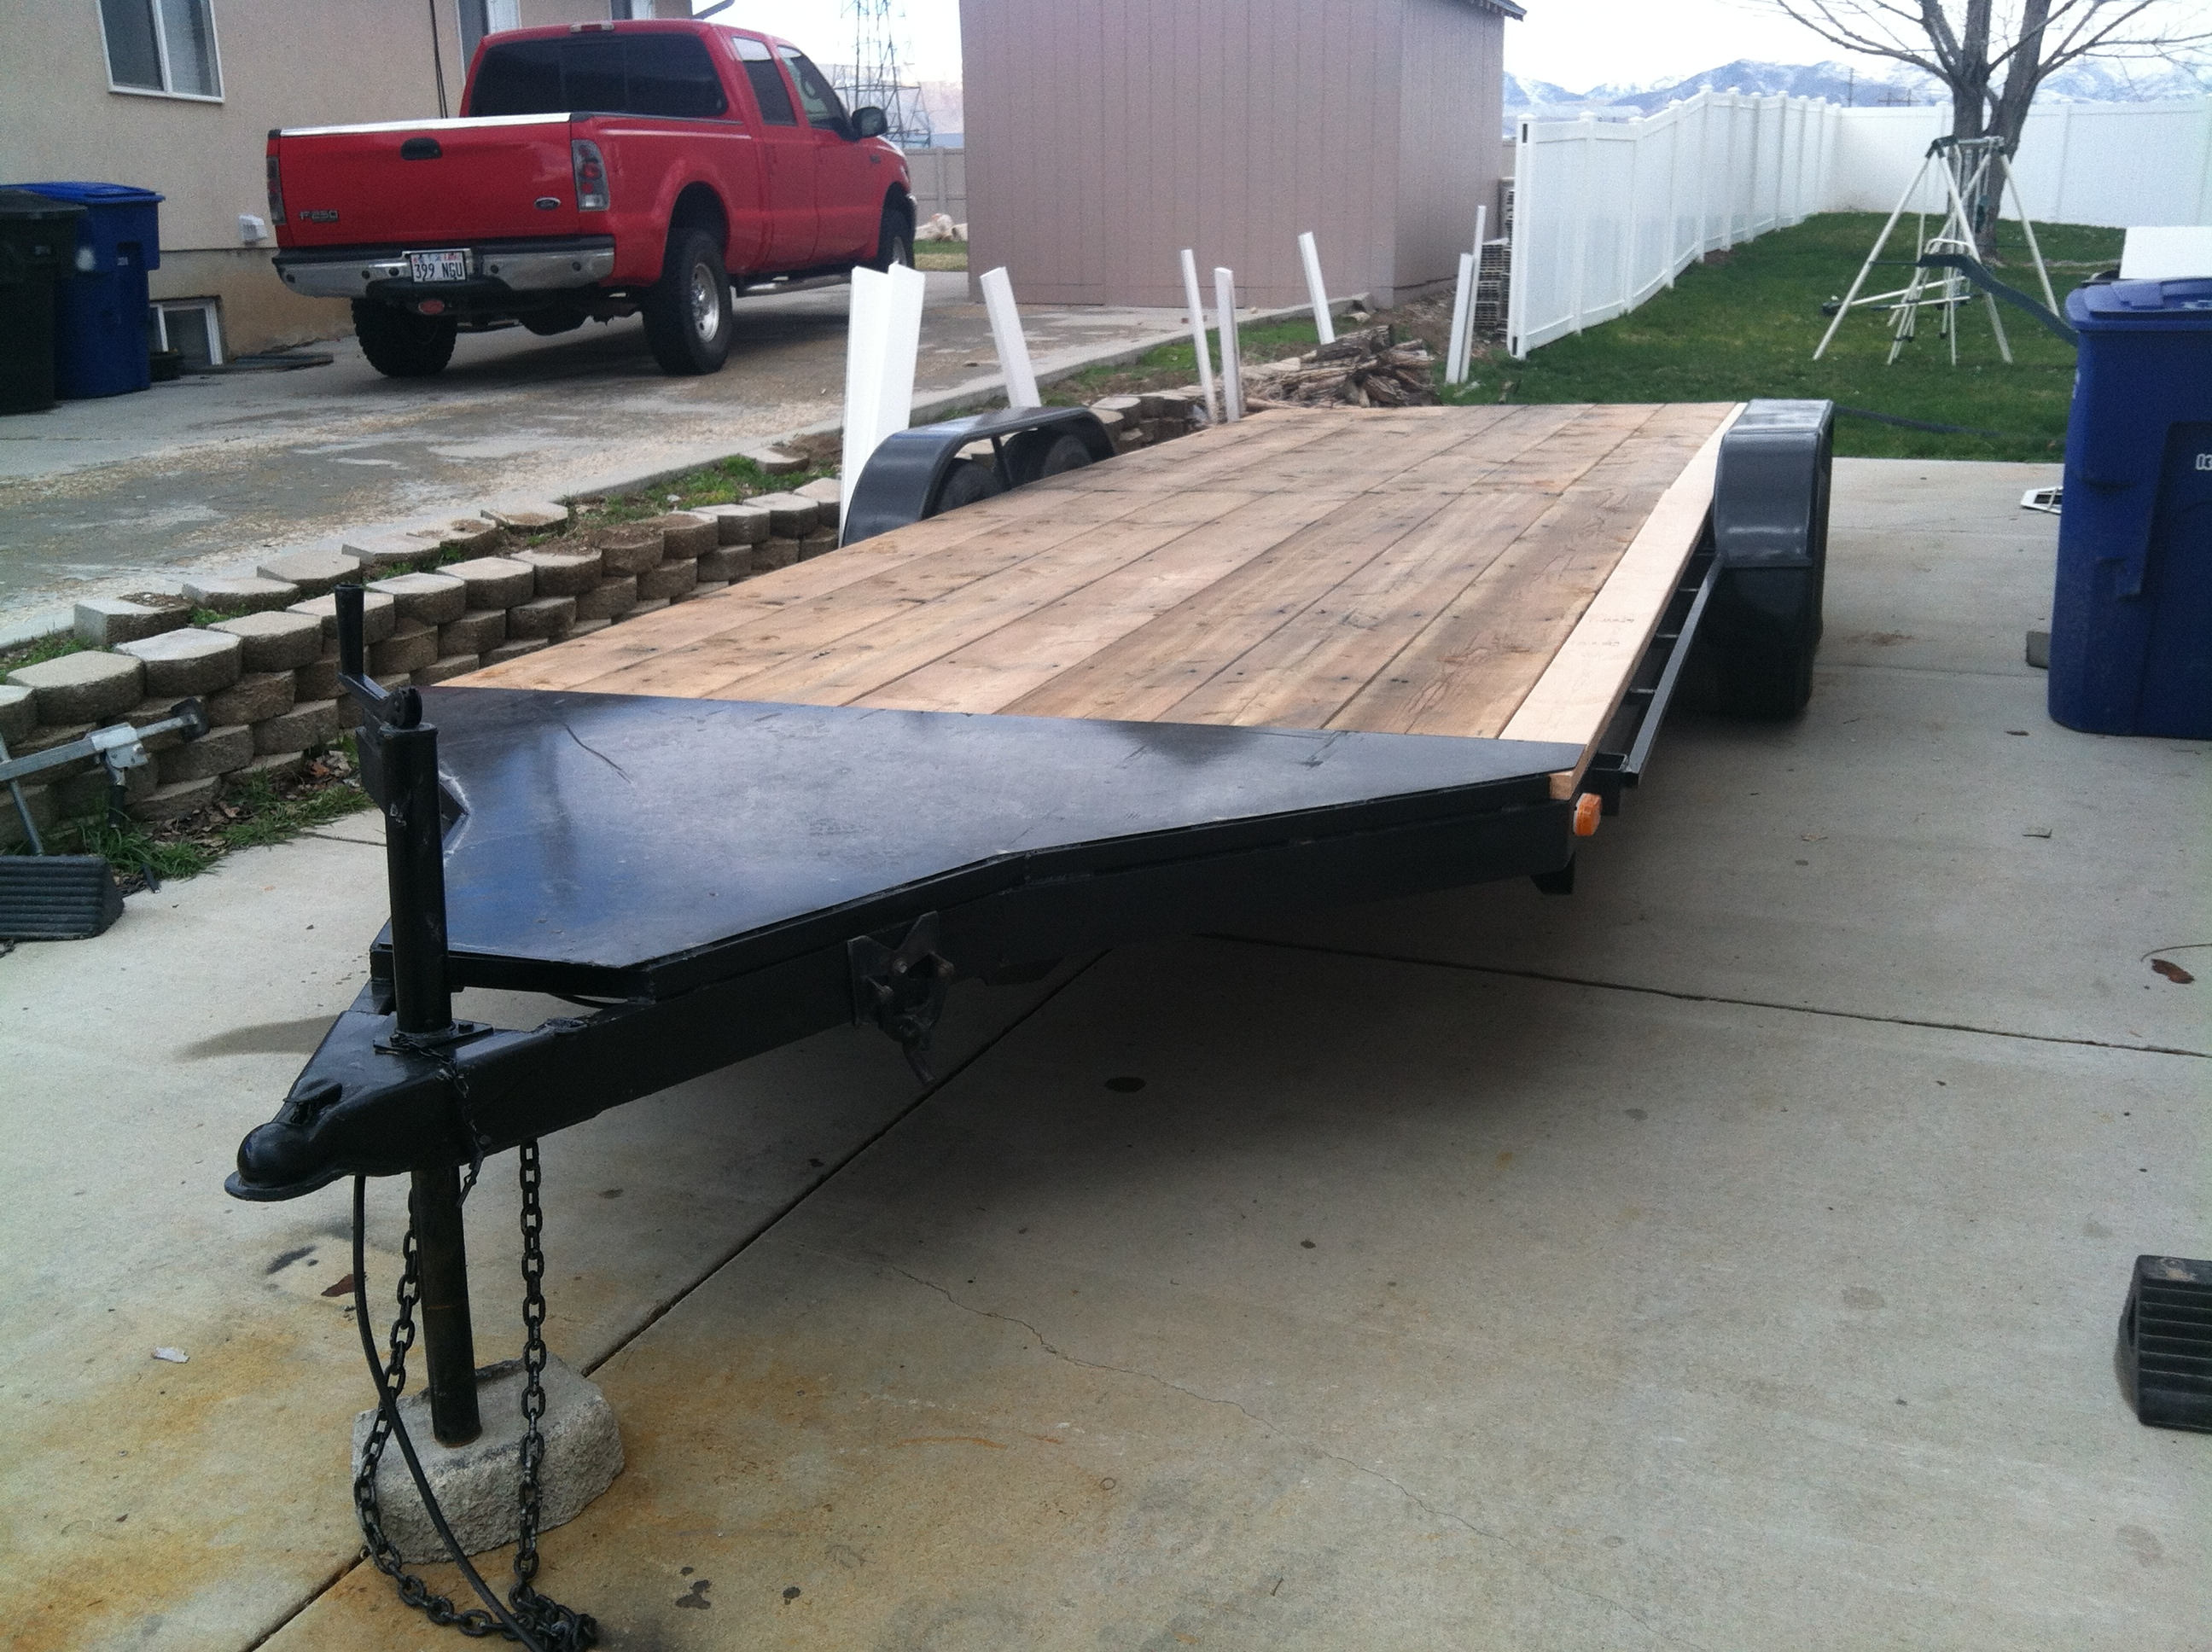 A1 Trailer Repair and Welding - ad image